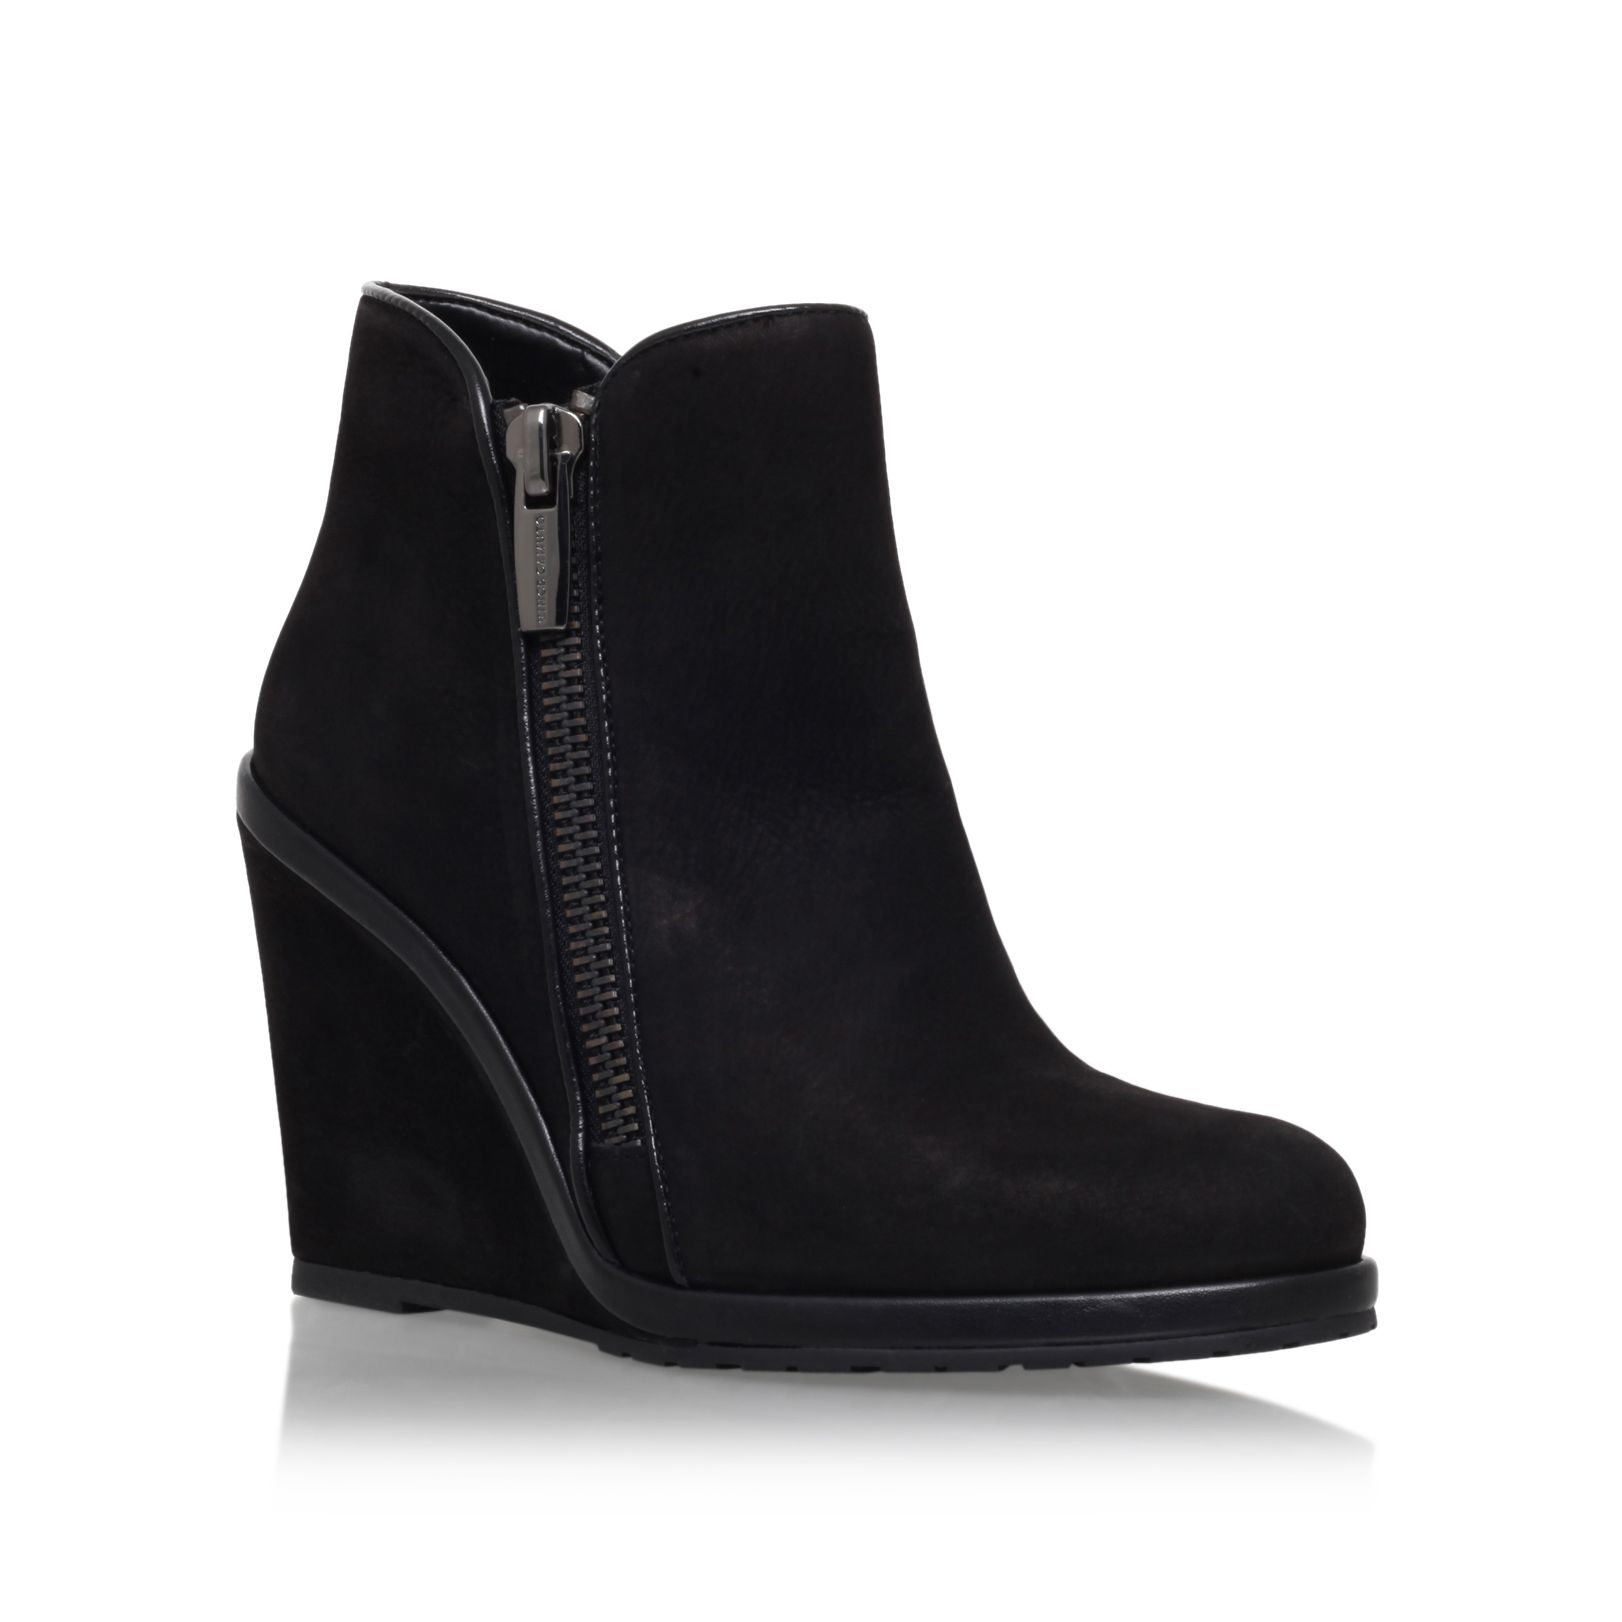 Vince camuto Jeffers Wedge Heel Ankle Boots in Black | Lyst